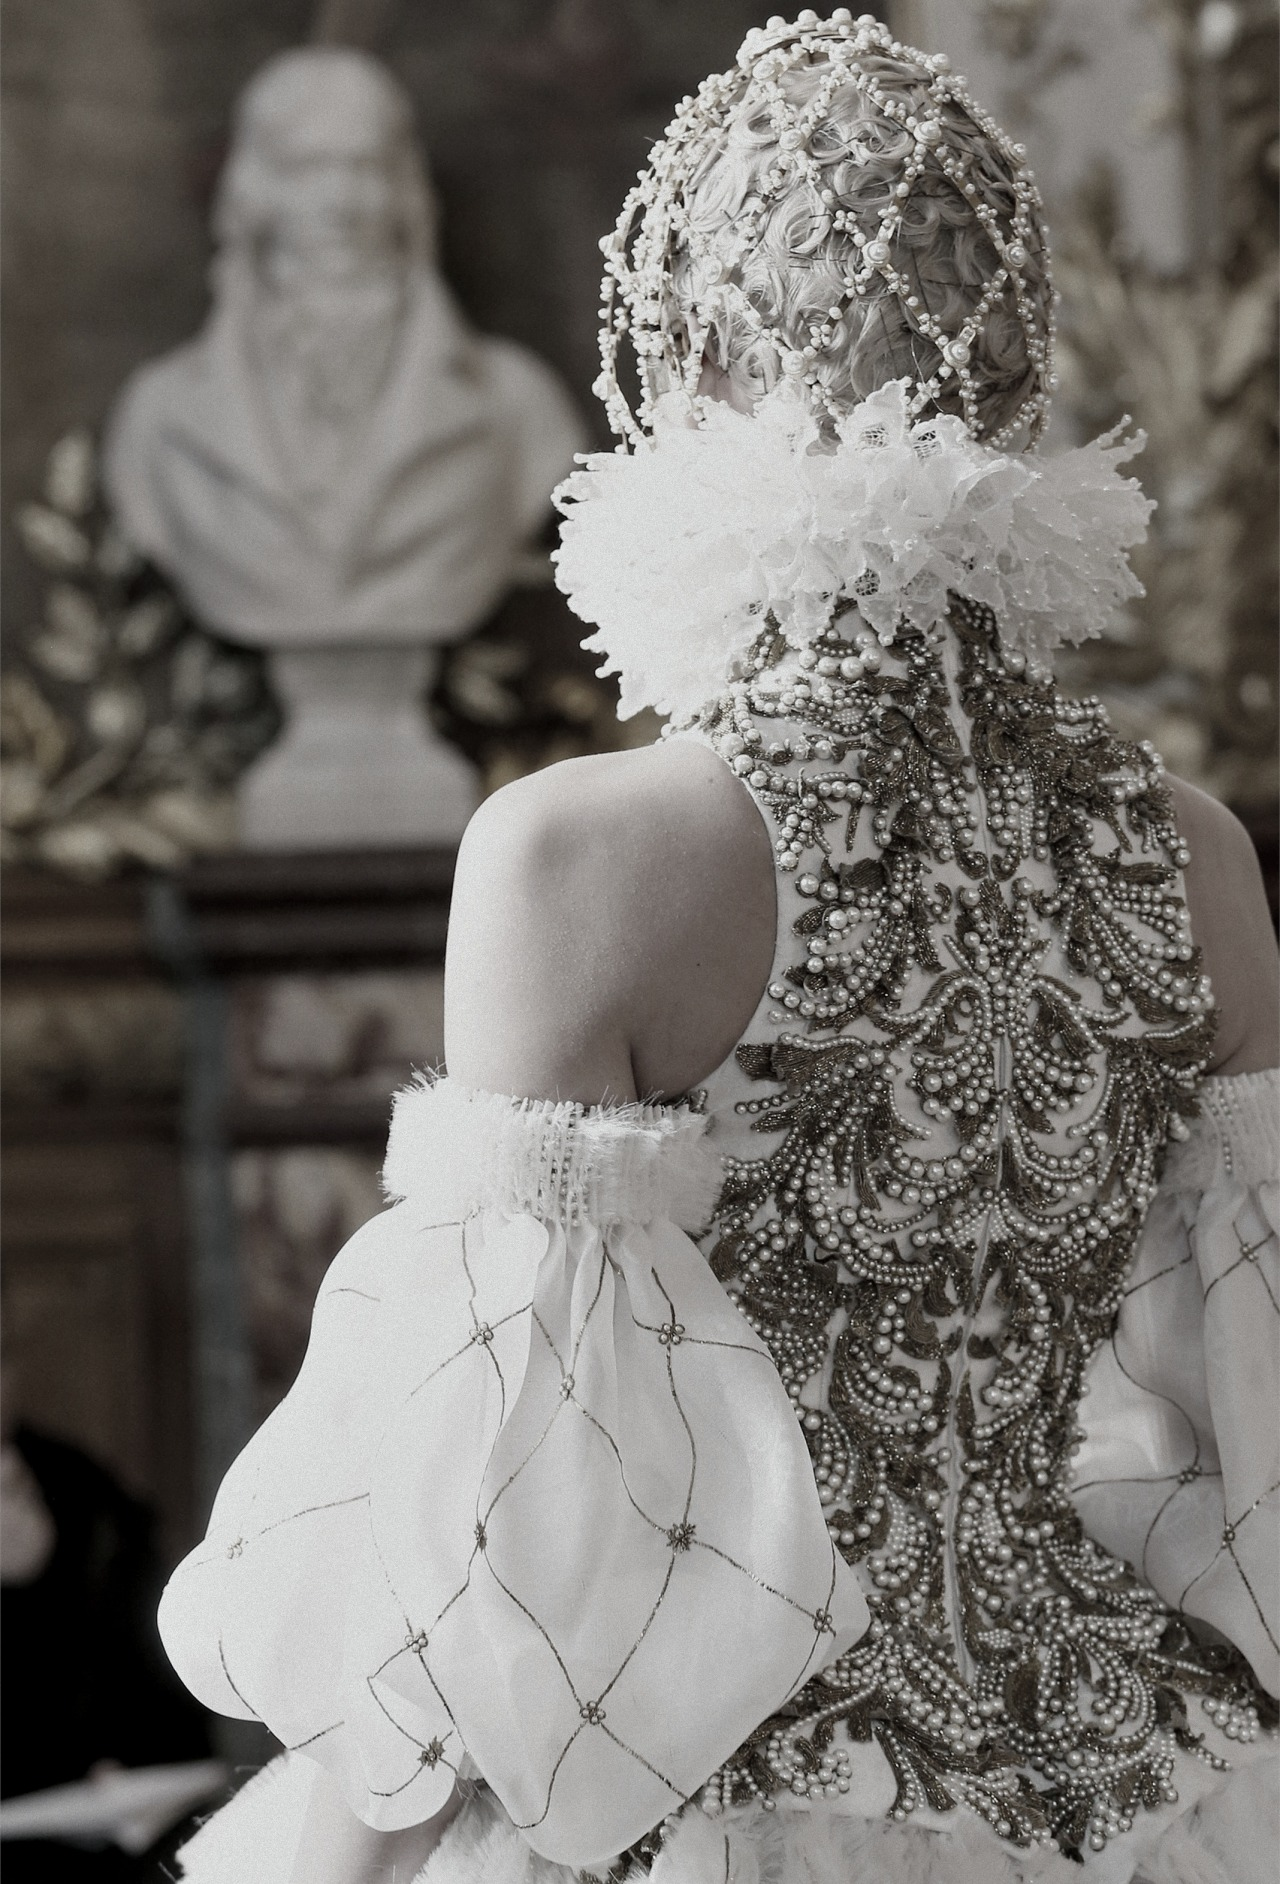 Alexander McQueen Autumn/Winter 2013